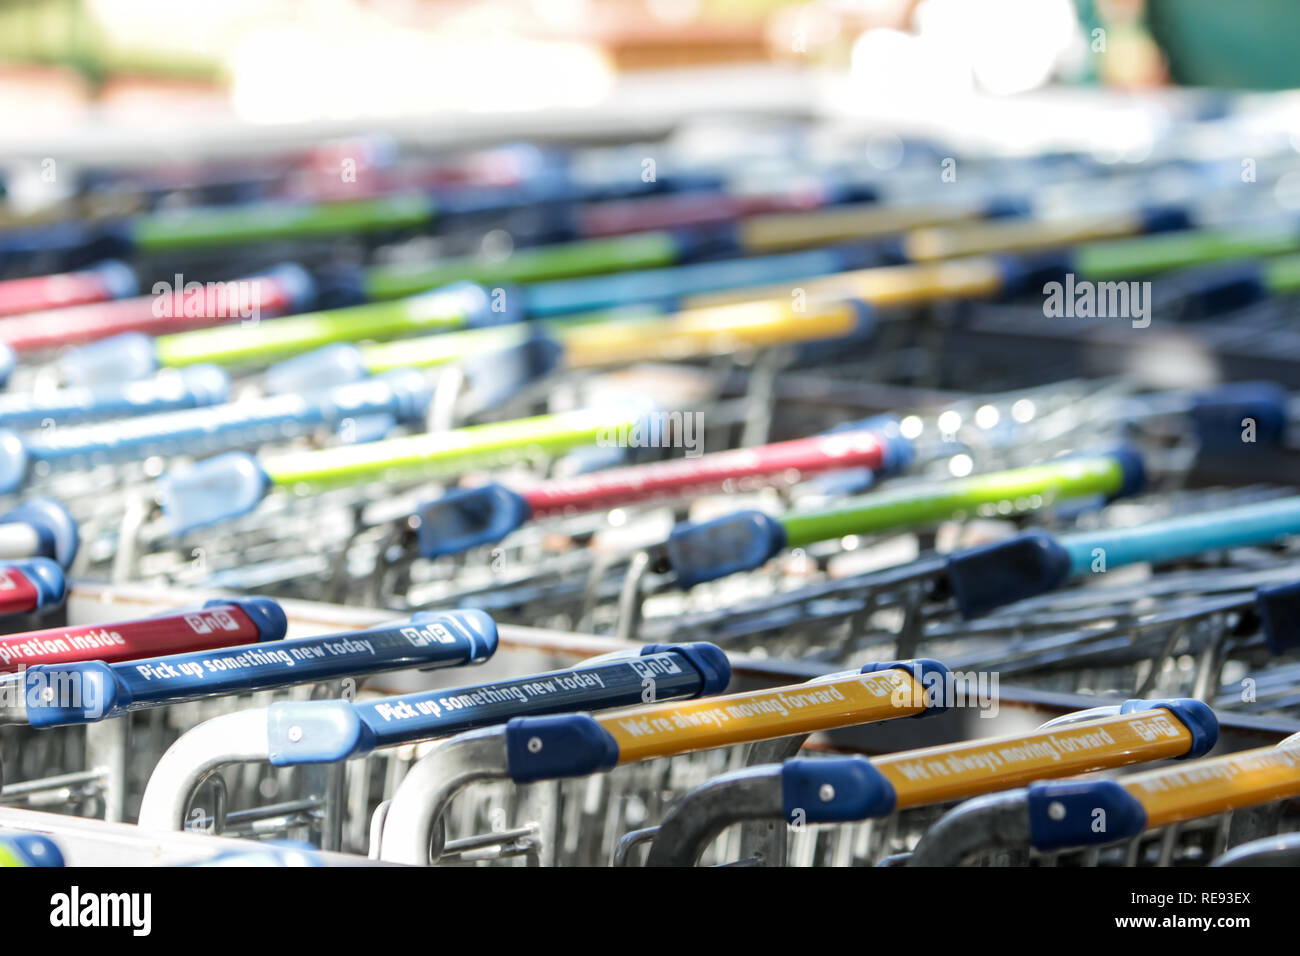 Parked trolleys - Stock Image